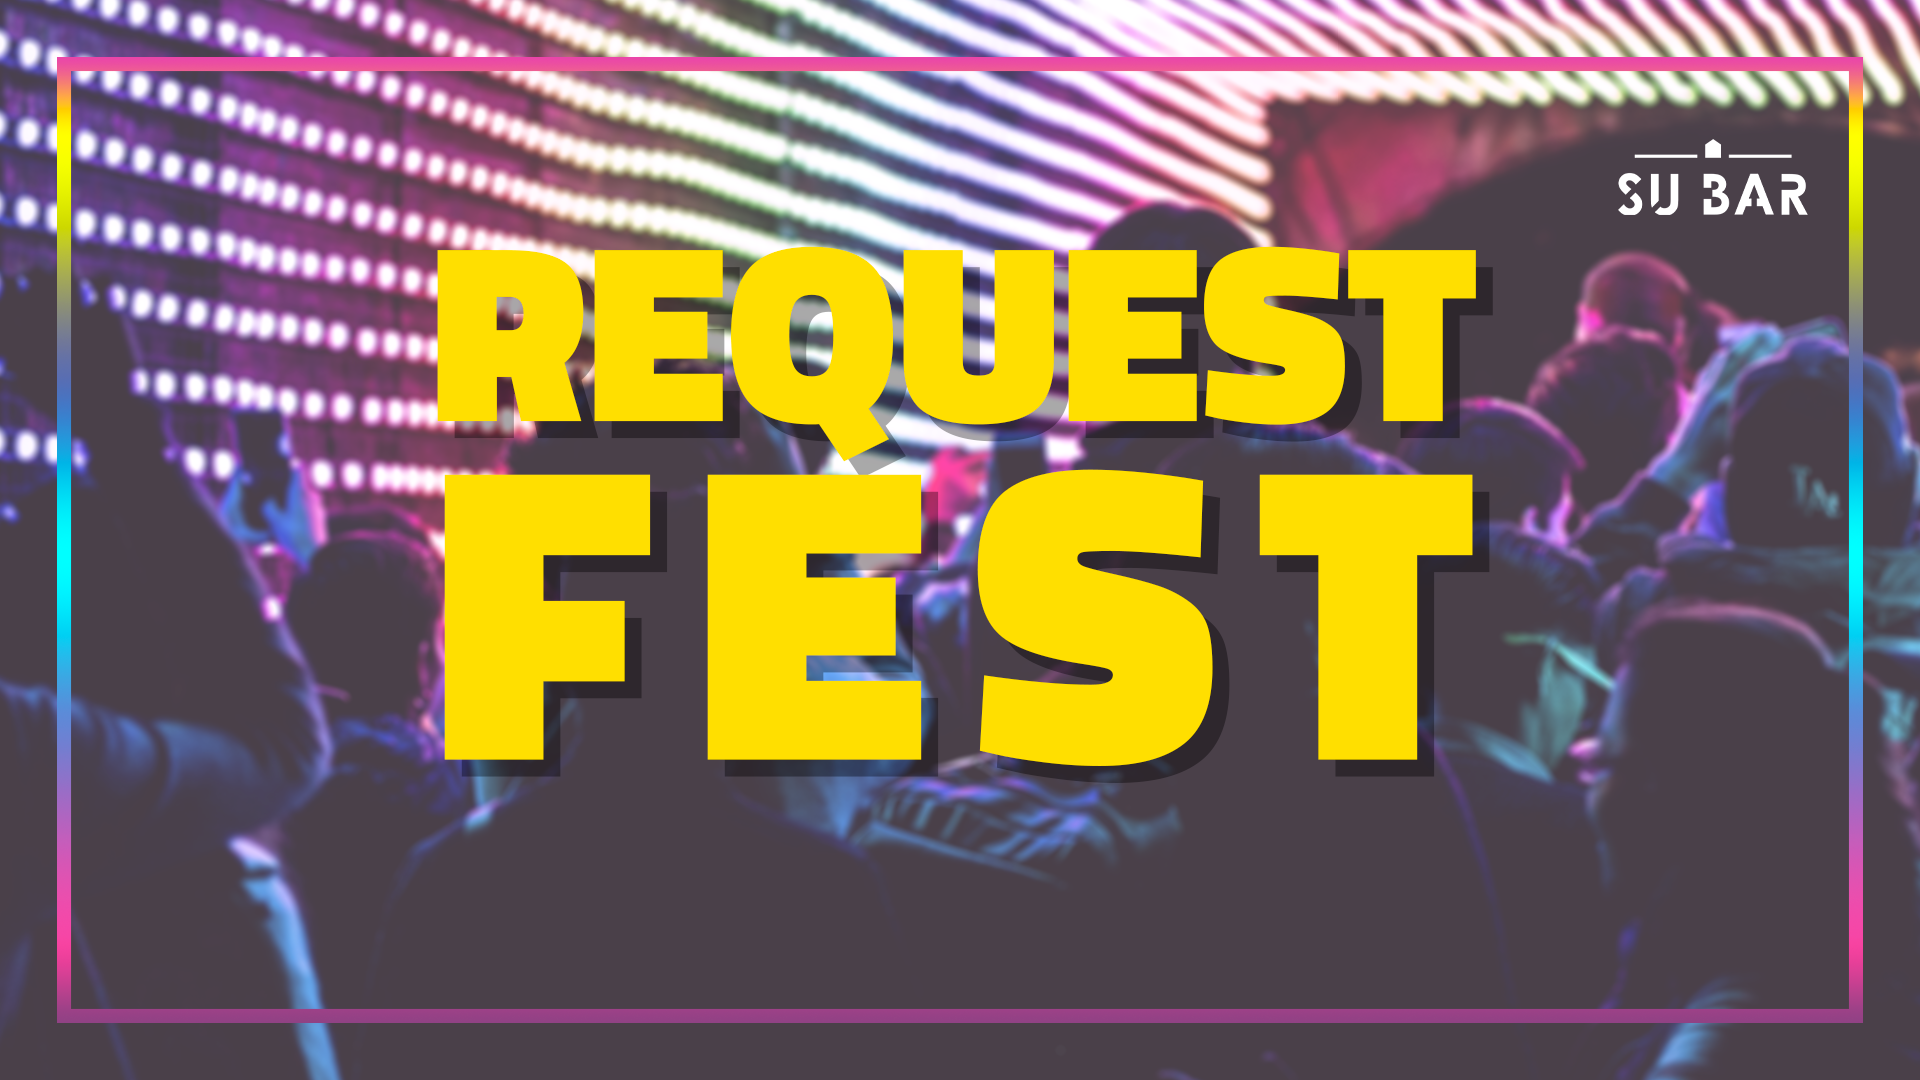 Request Fest